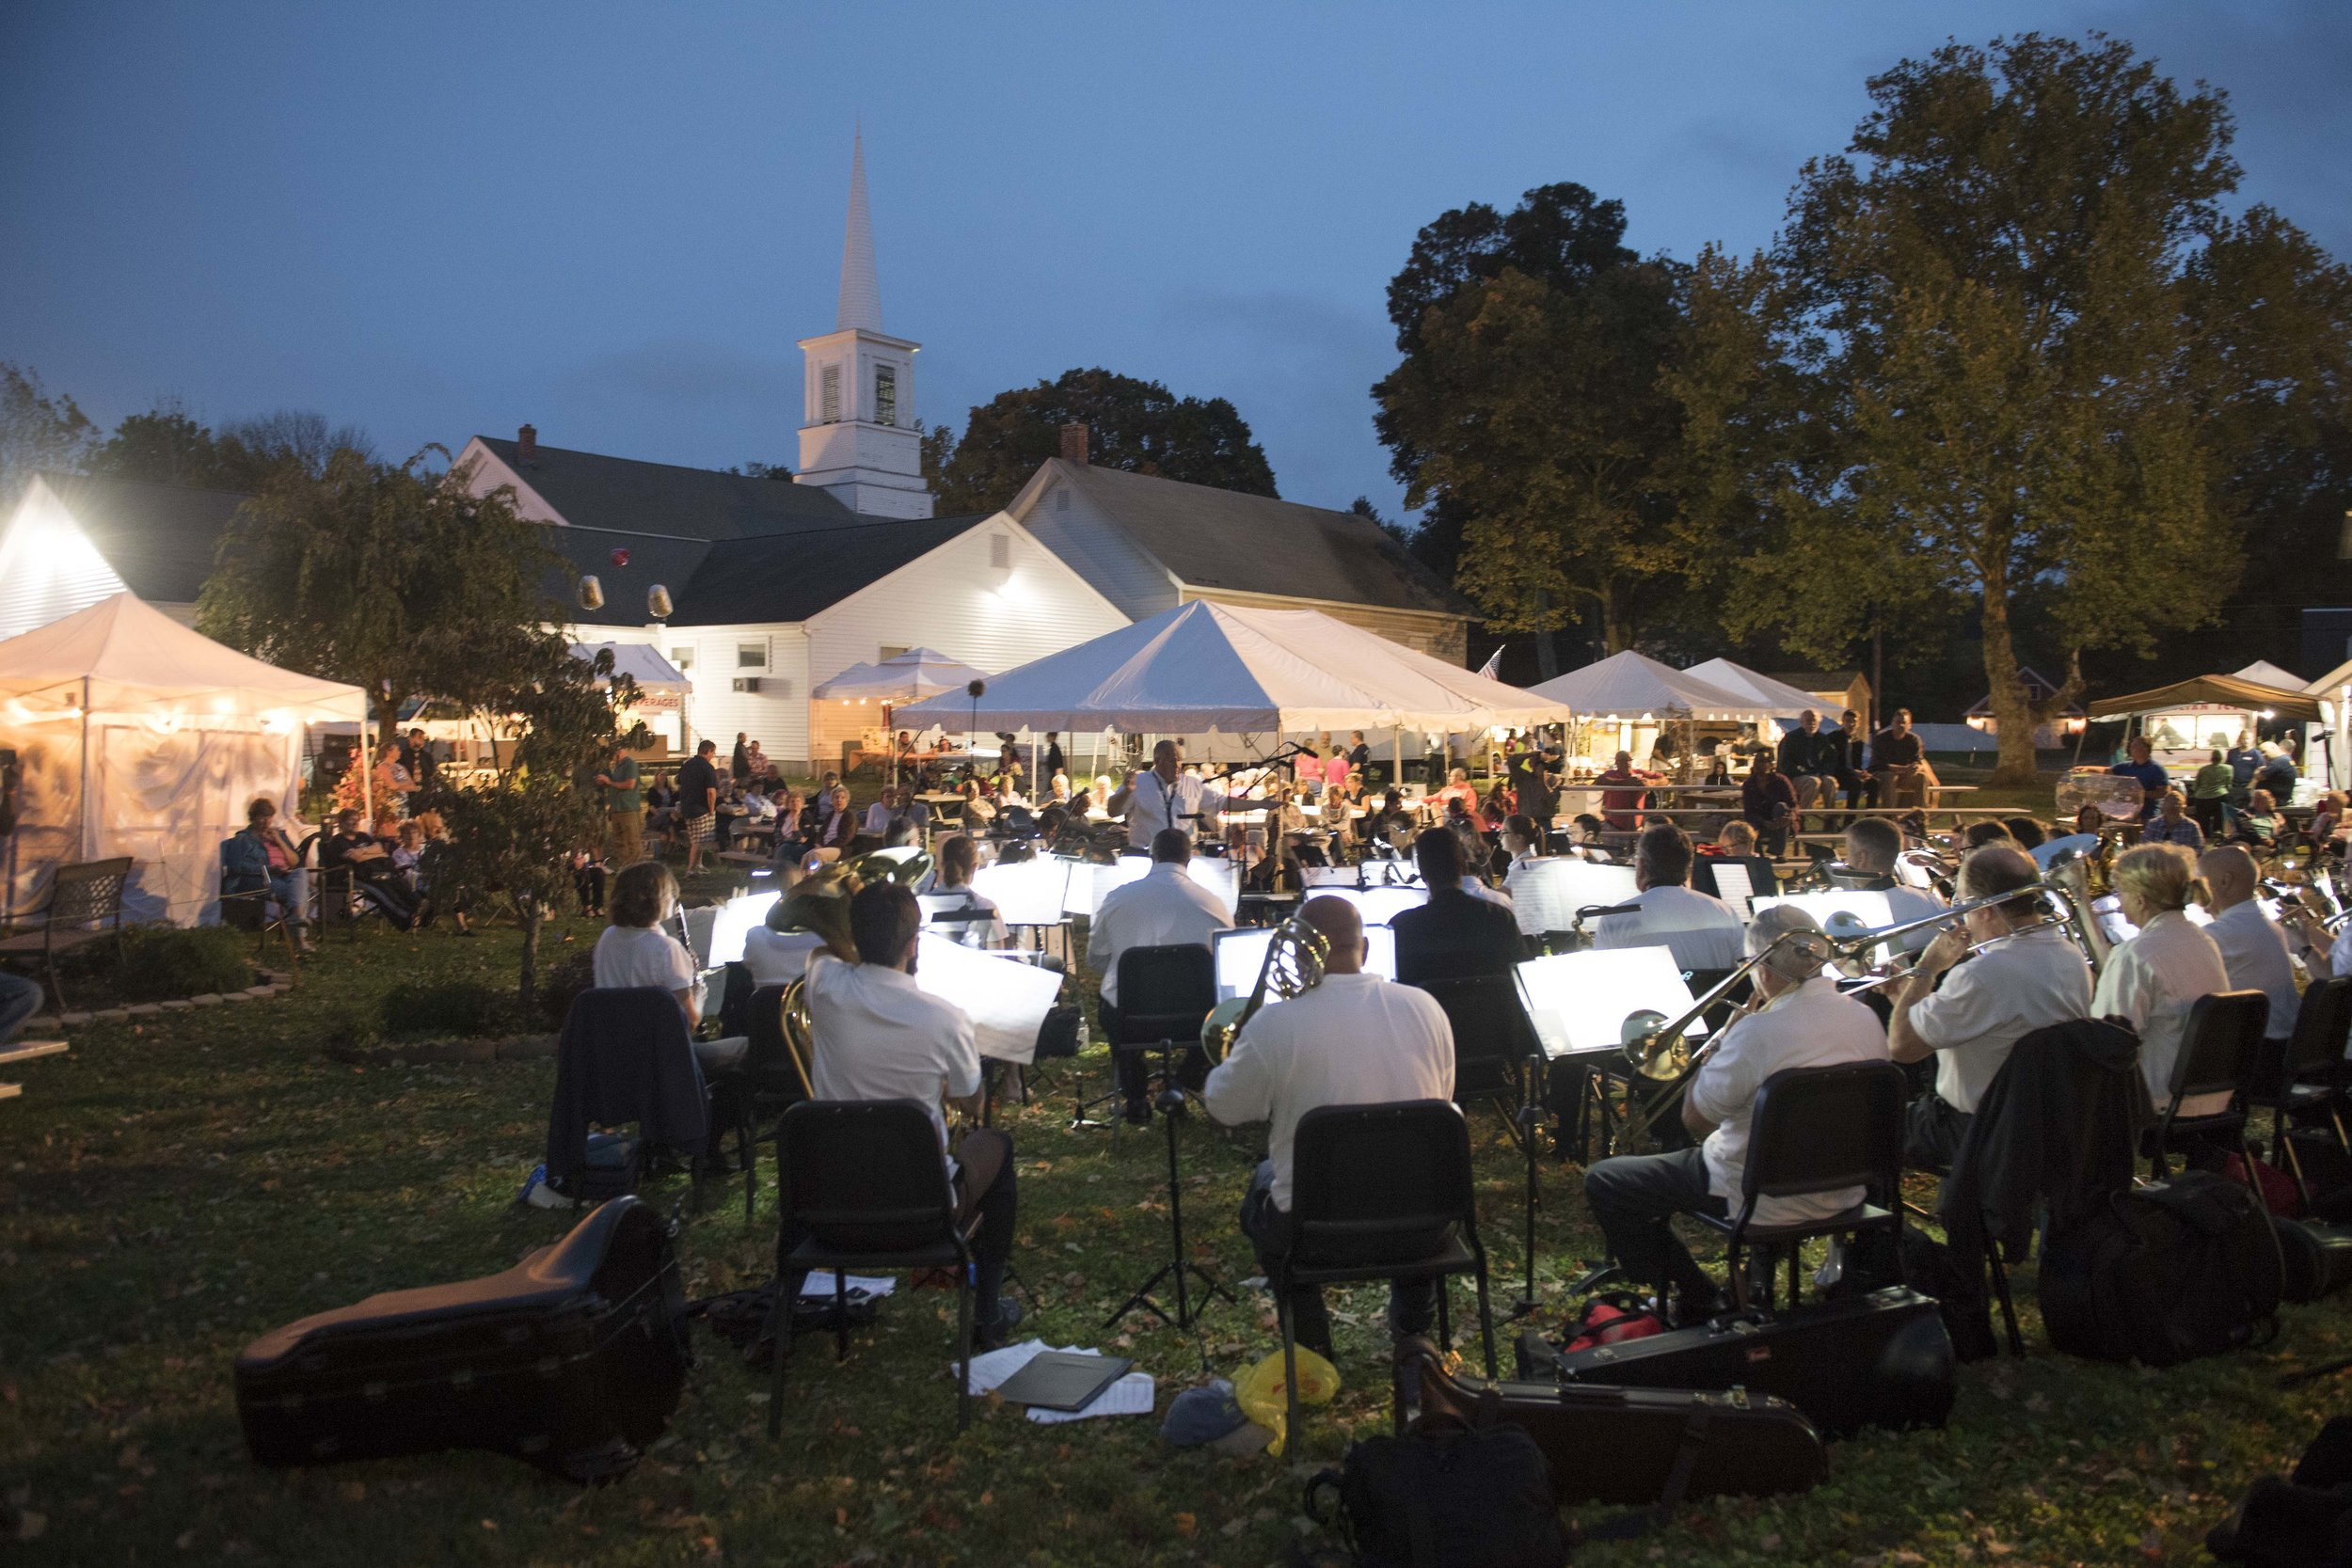 Middletown Symphonic Band - Symphonic BandSunday, September 225:00 PM - 6:30 PMMore information about:Middletown Symphonic Band